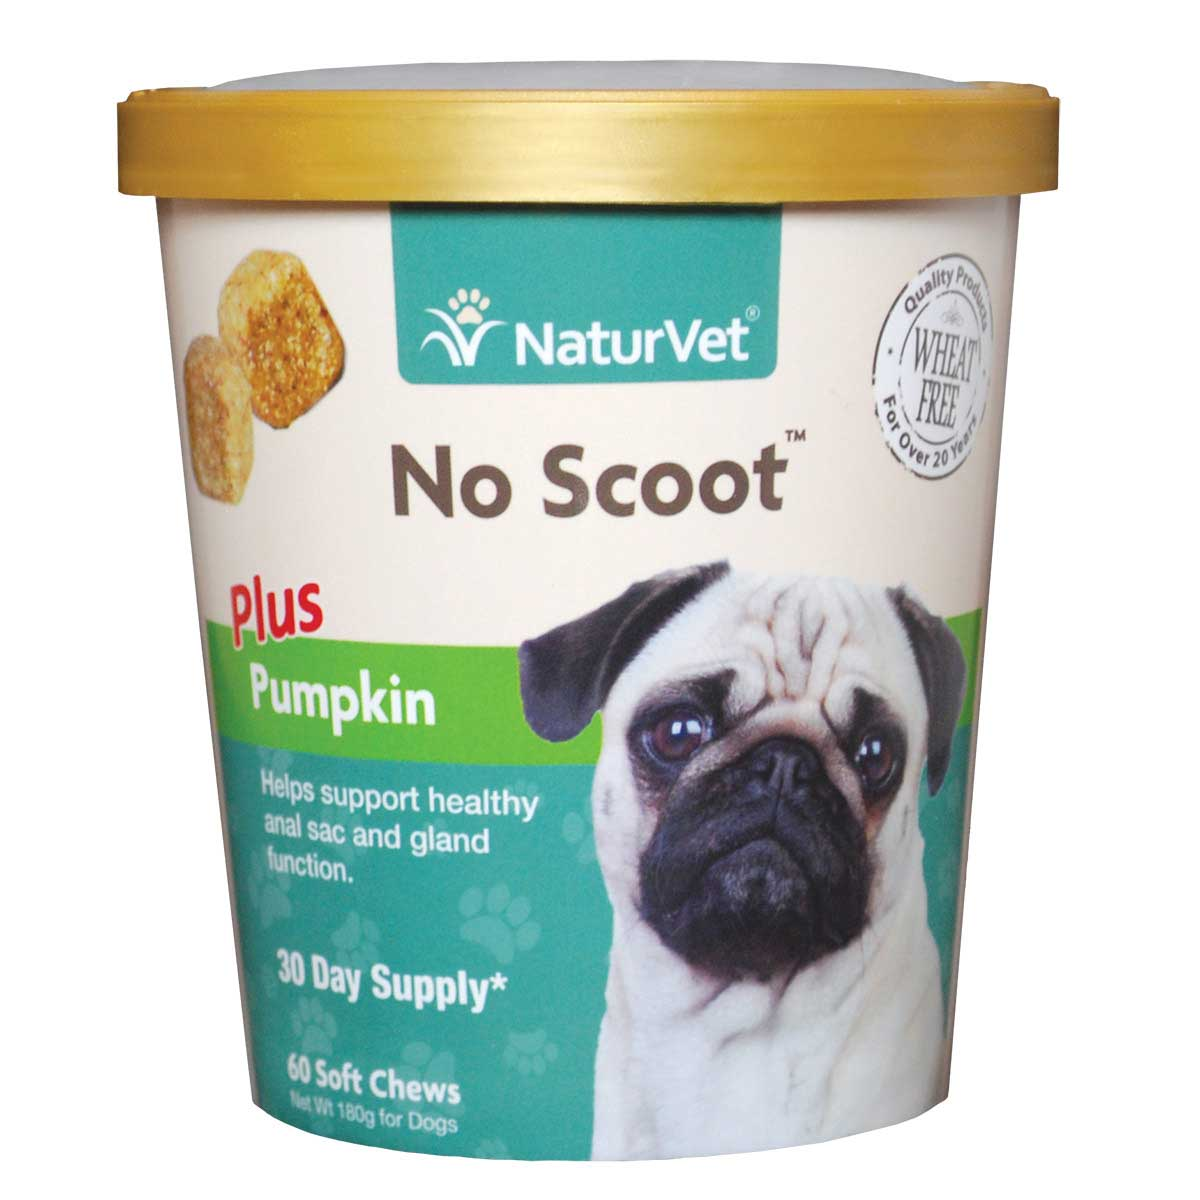 NaturVet No Scoot Plus Pumpkin Fiber Supplements for Dogs - 60 Count